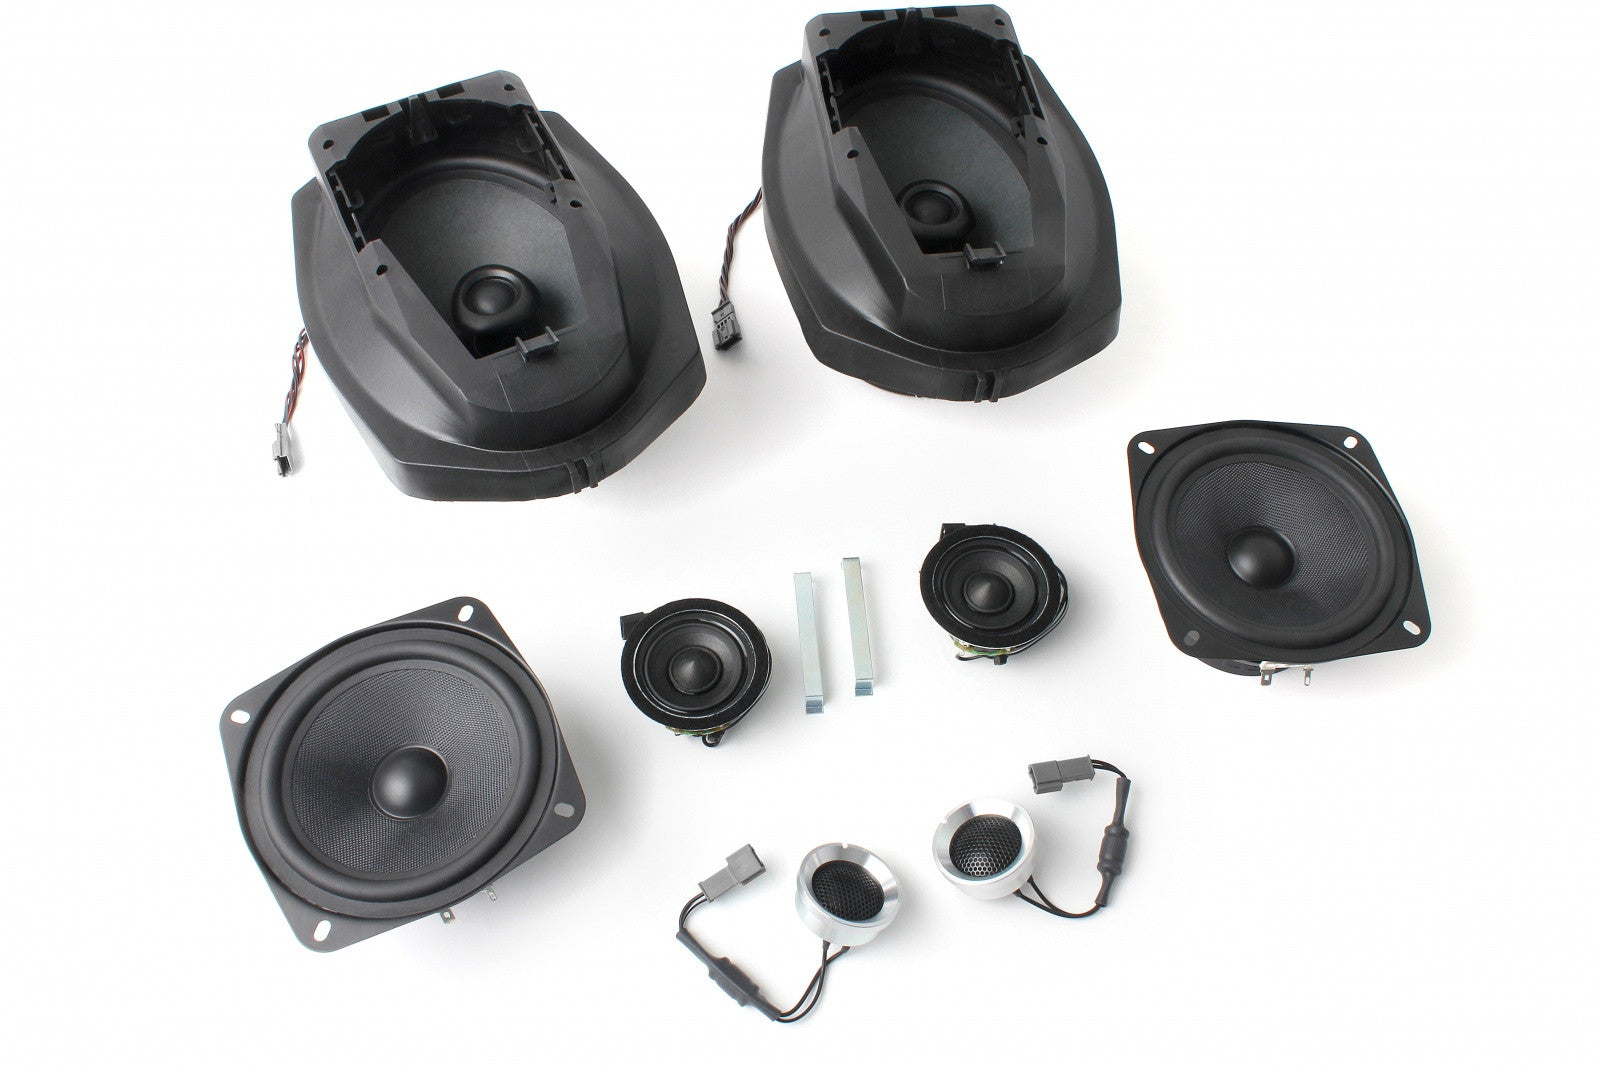 BMW Speaker Upgrade for 1996-1999 E36 Coupe/Sedan with Harman Kardon